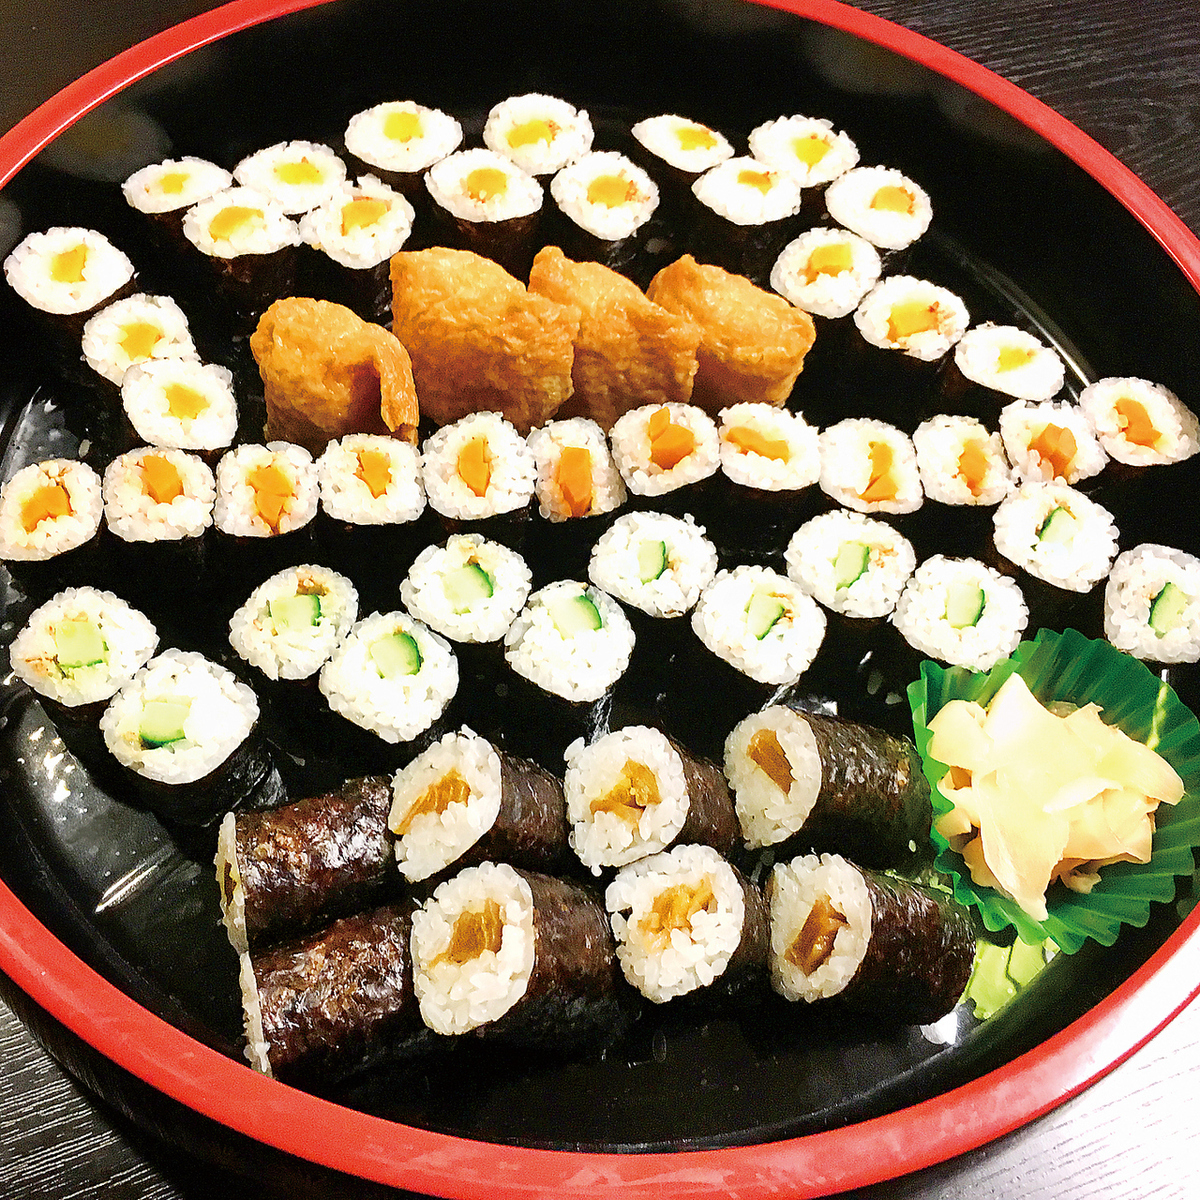 Assistant sushi platter (4 to 5 people)